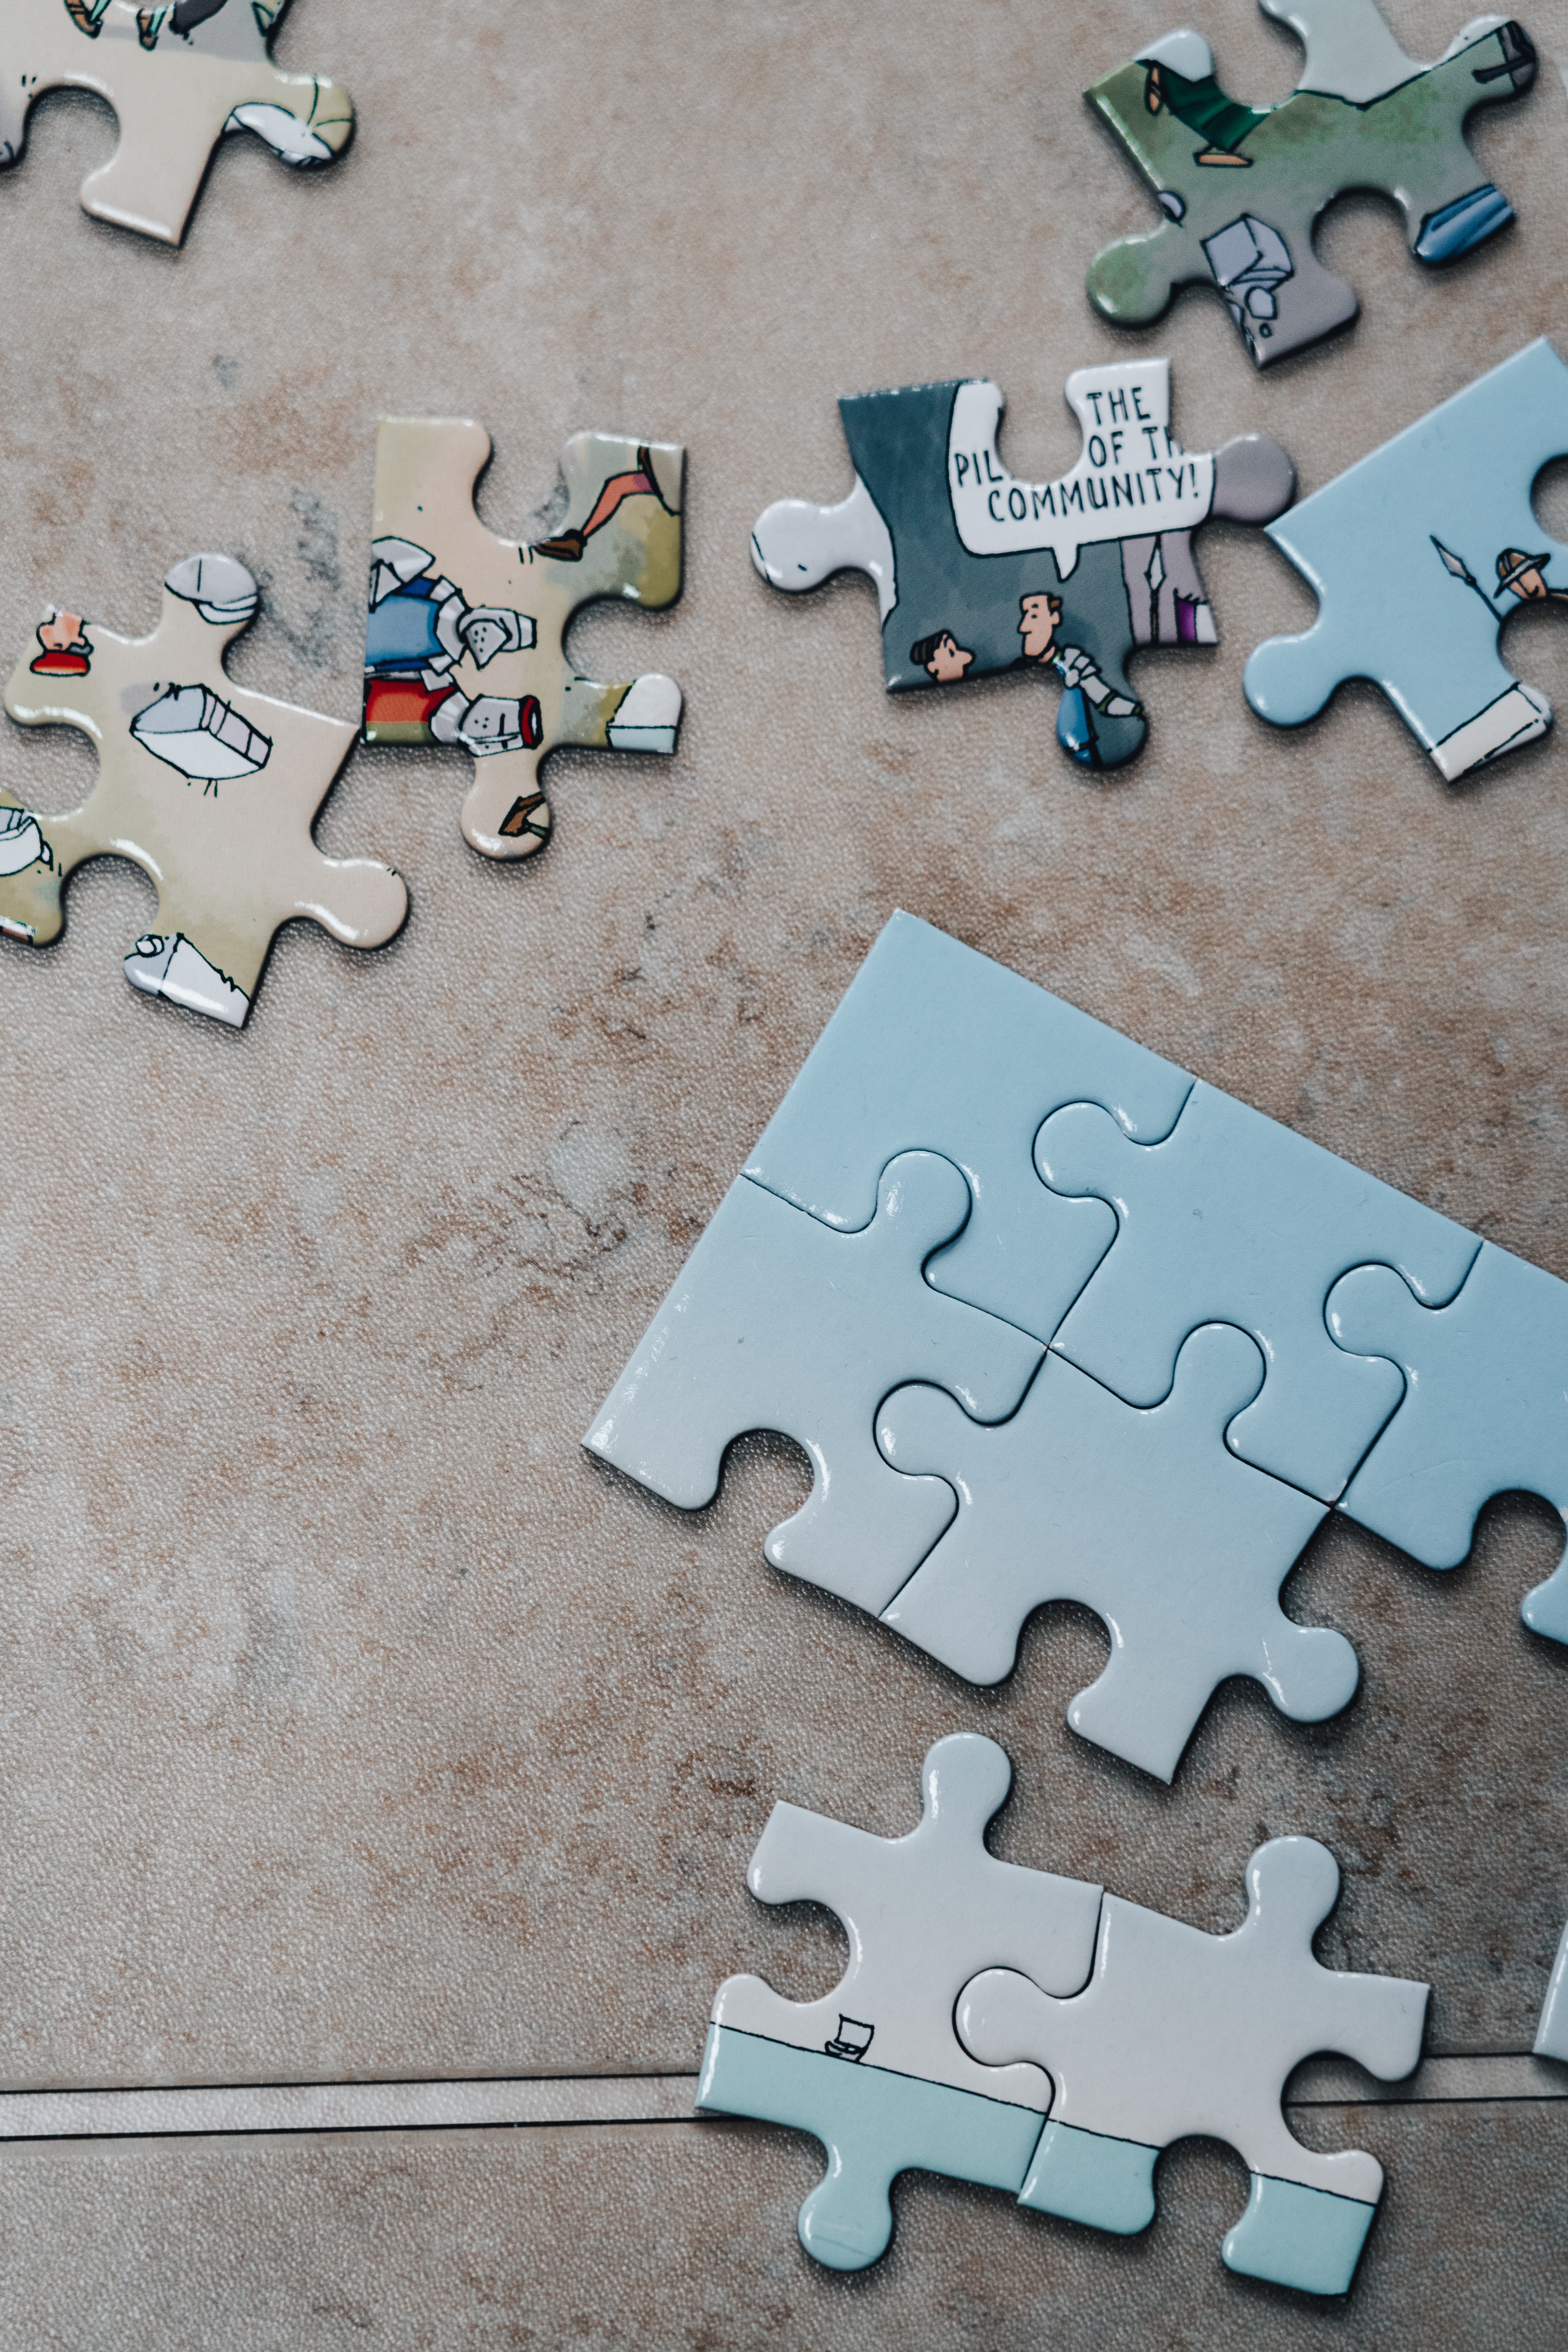 A picture of a jigsaw and various parts coming together